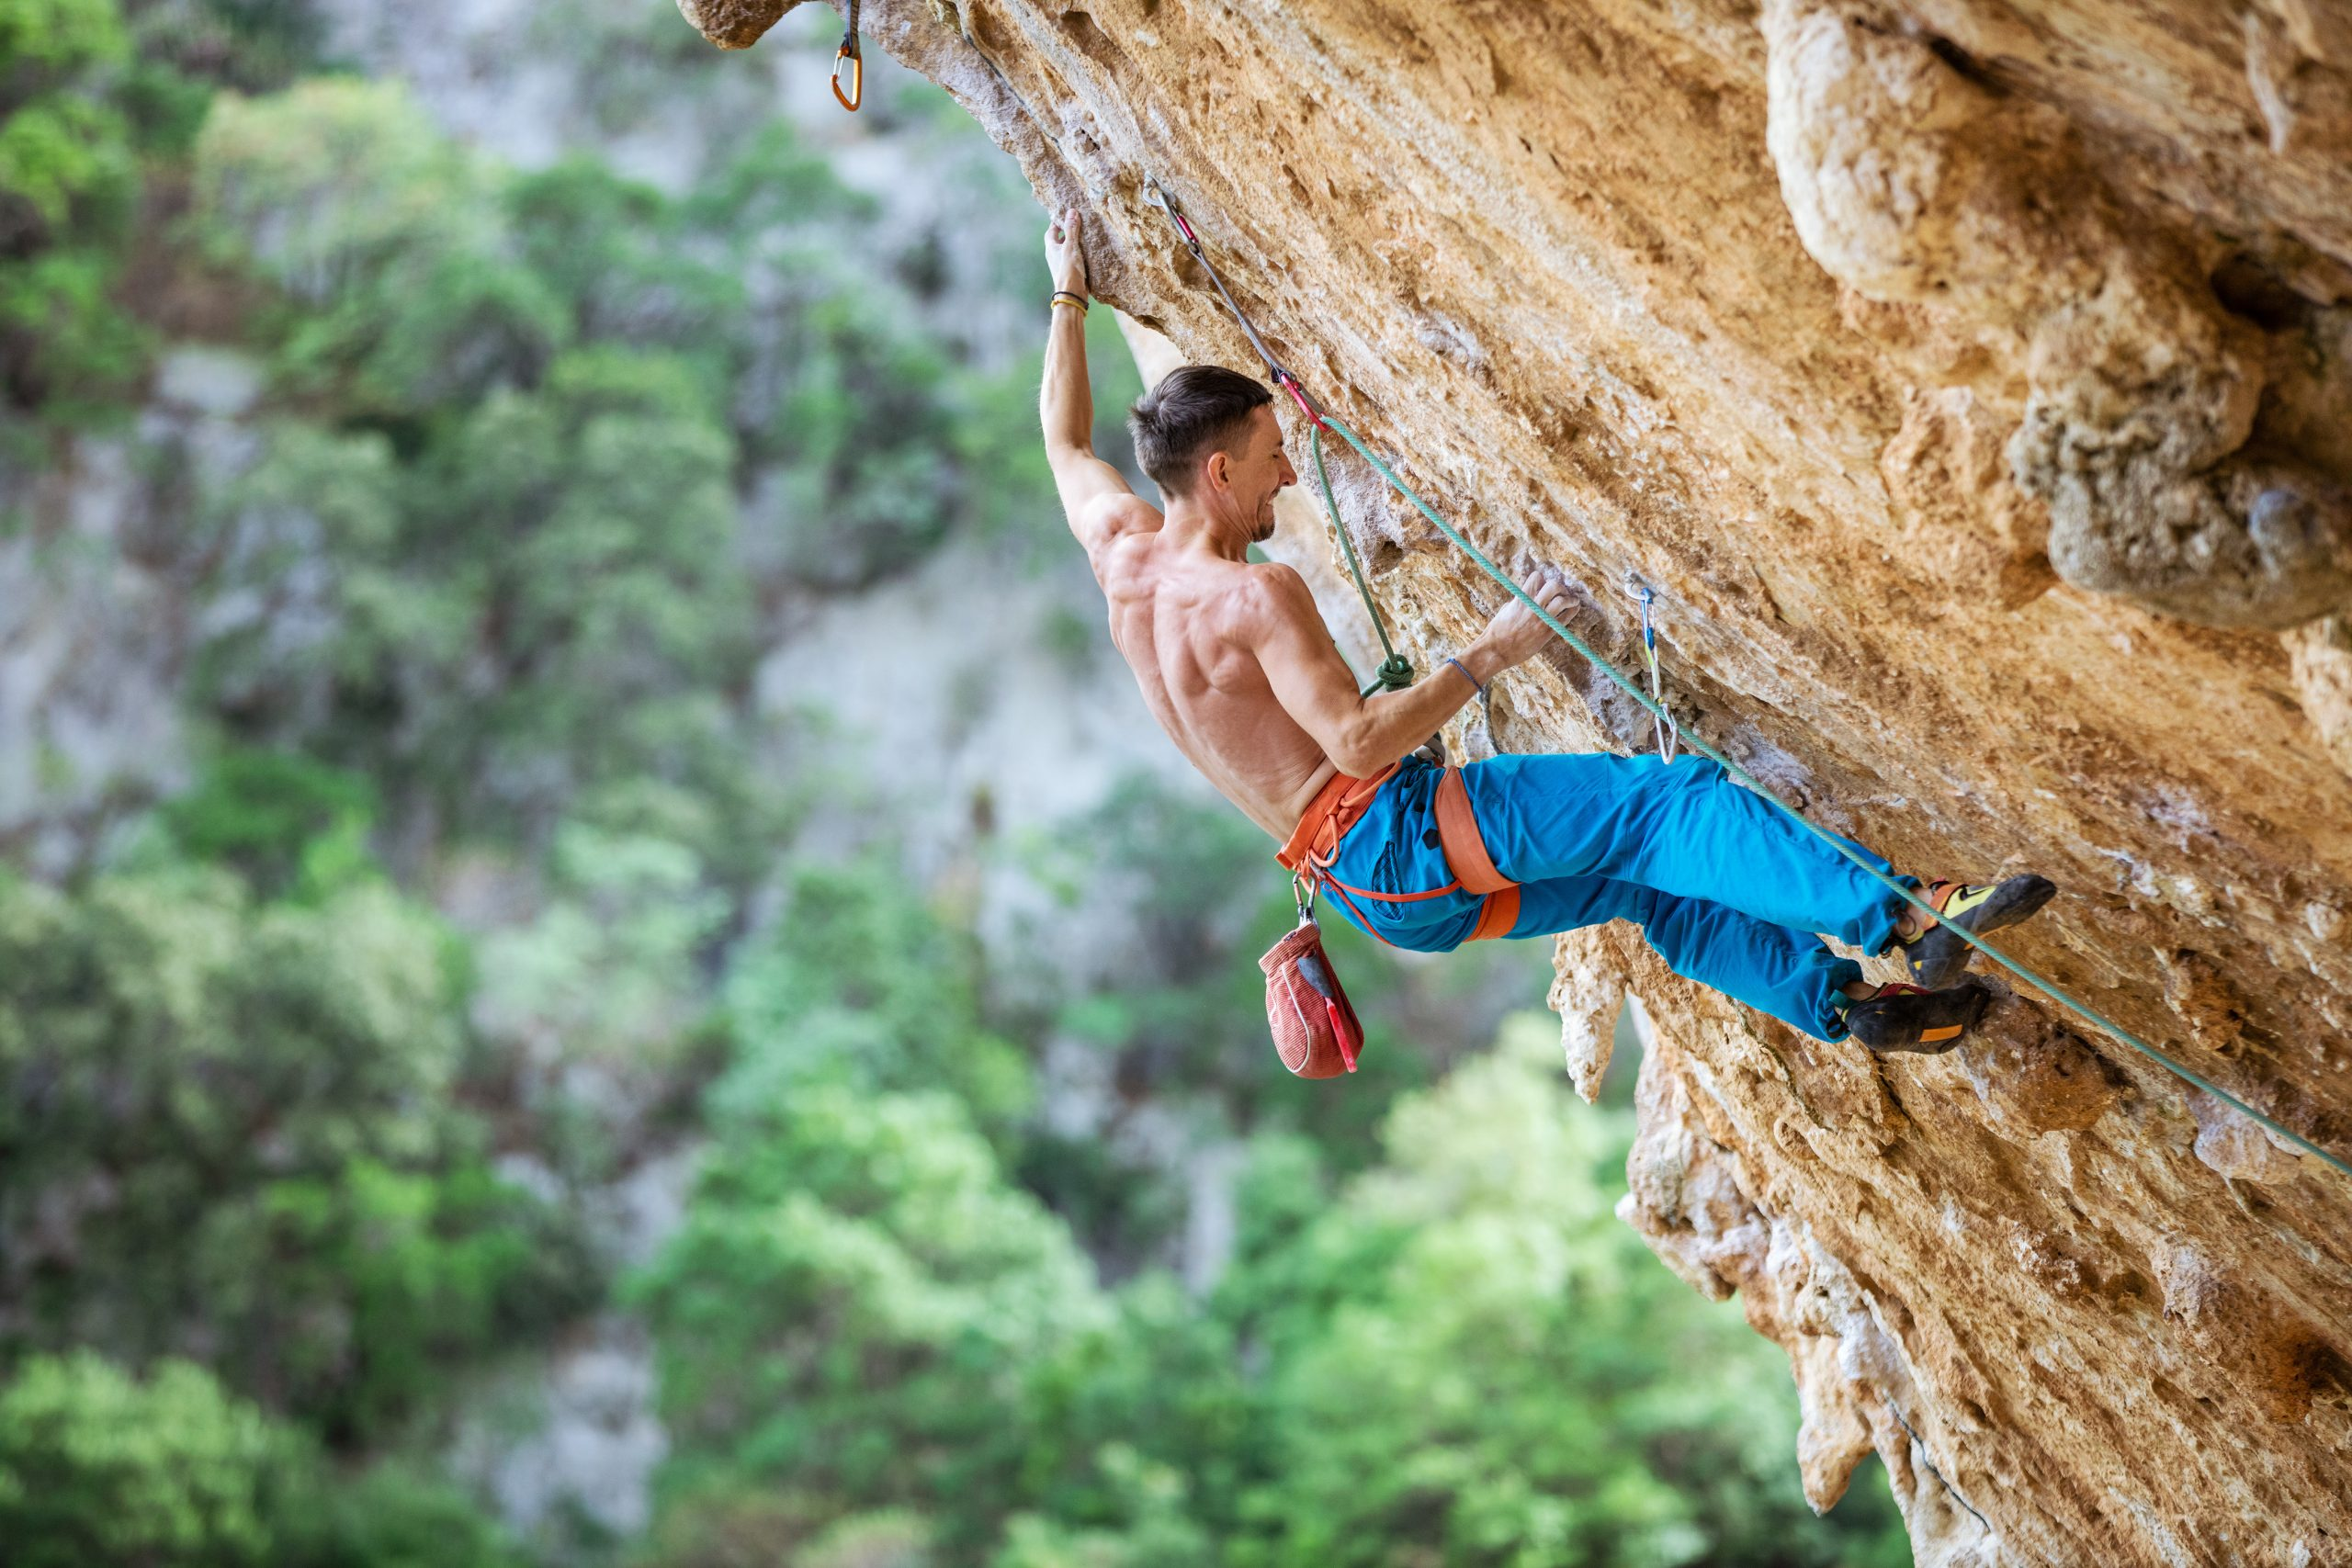 Male climber trying hard to grip small handholds on challenging